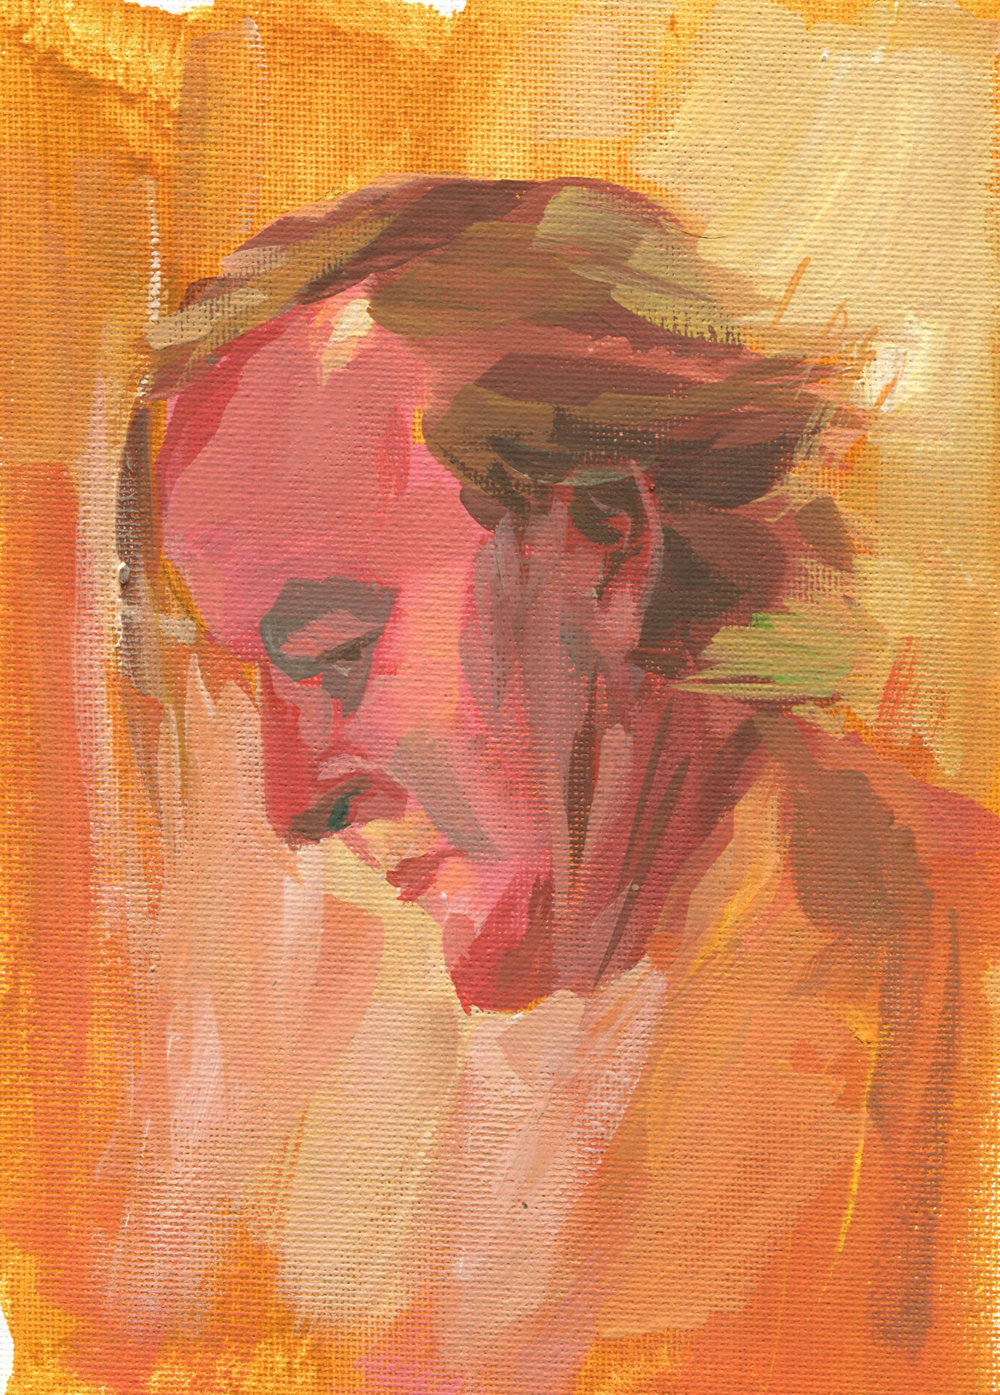 eugene_portrait_painting_emery.jpg